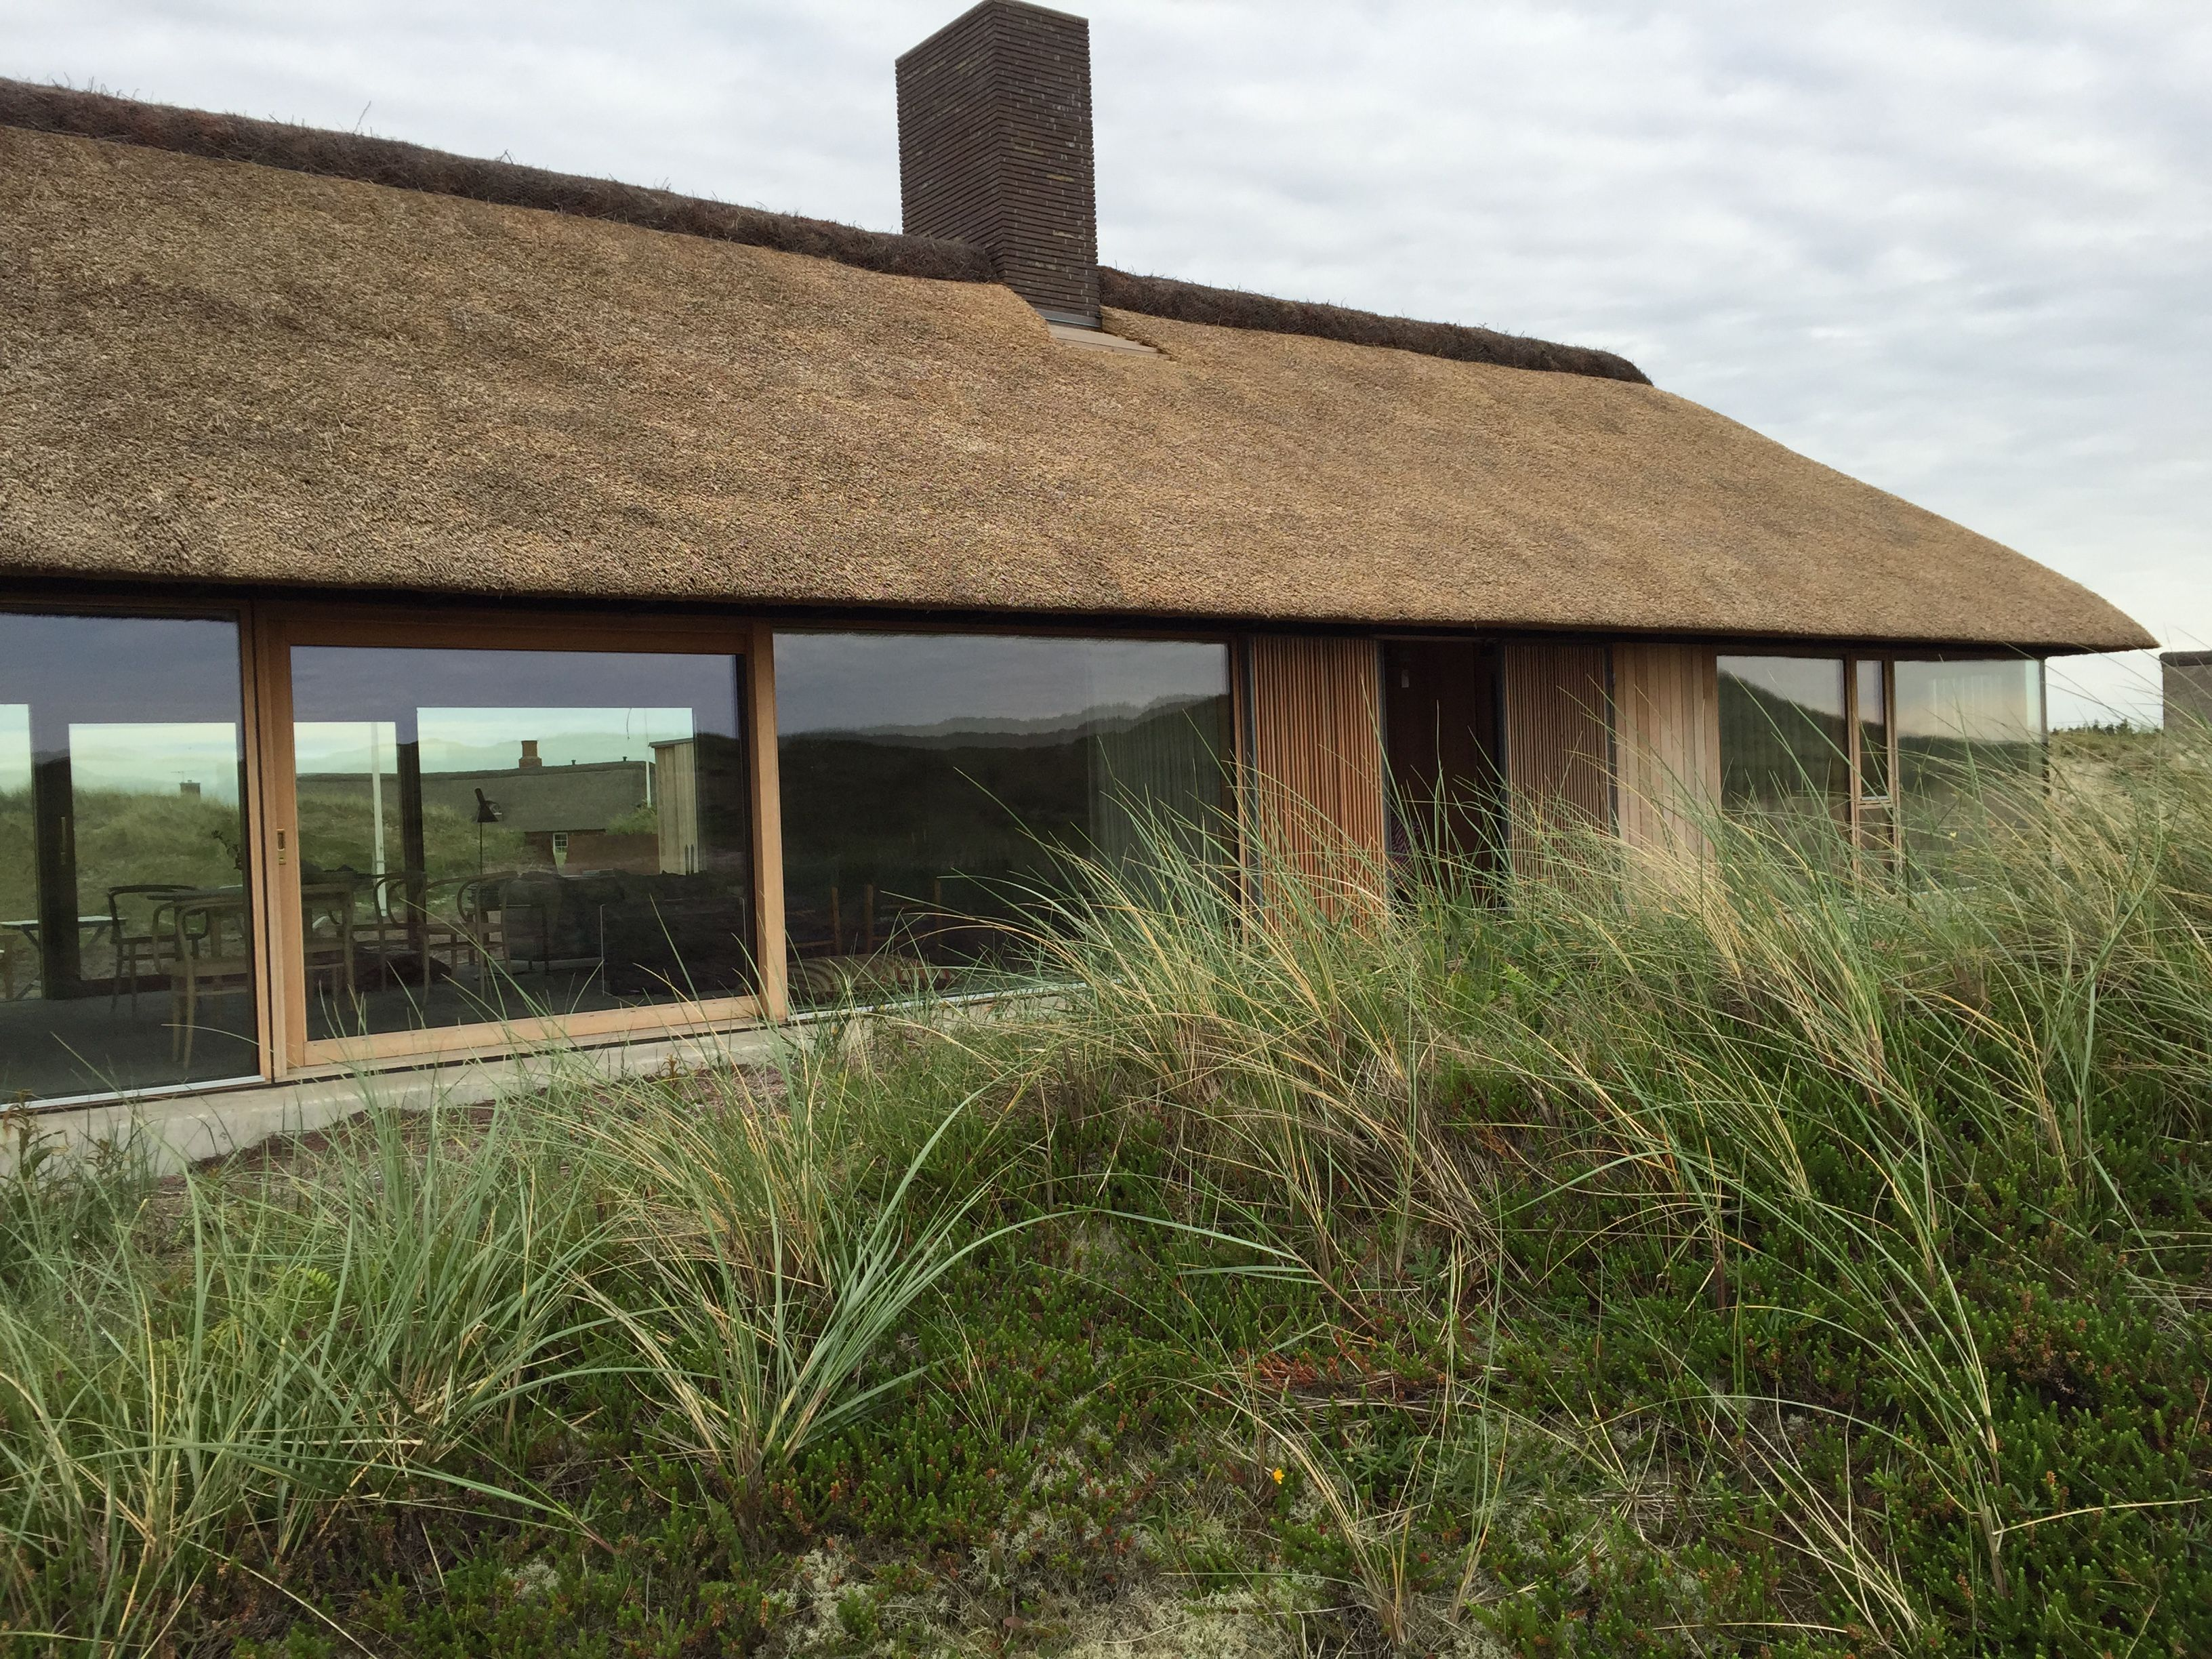 Sommerhus søndervig architecture durable roof architecture modern brick house timber house thatched